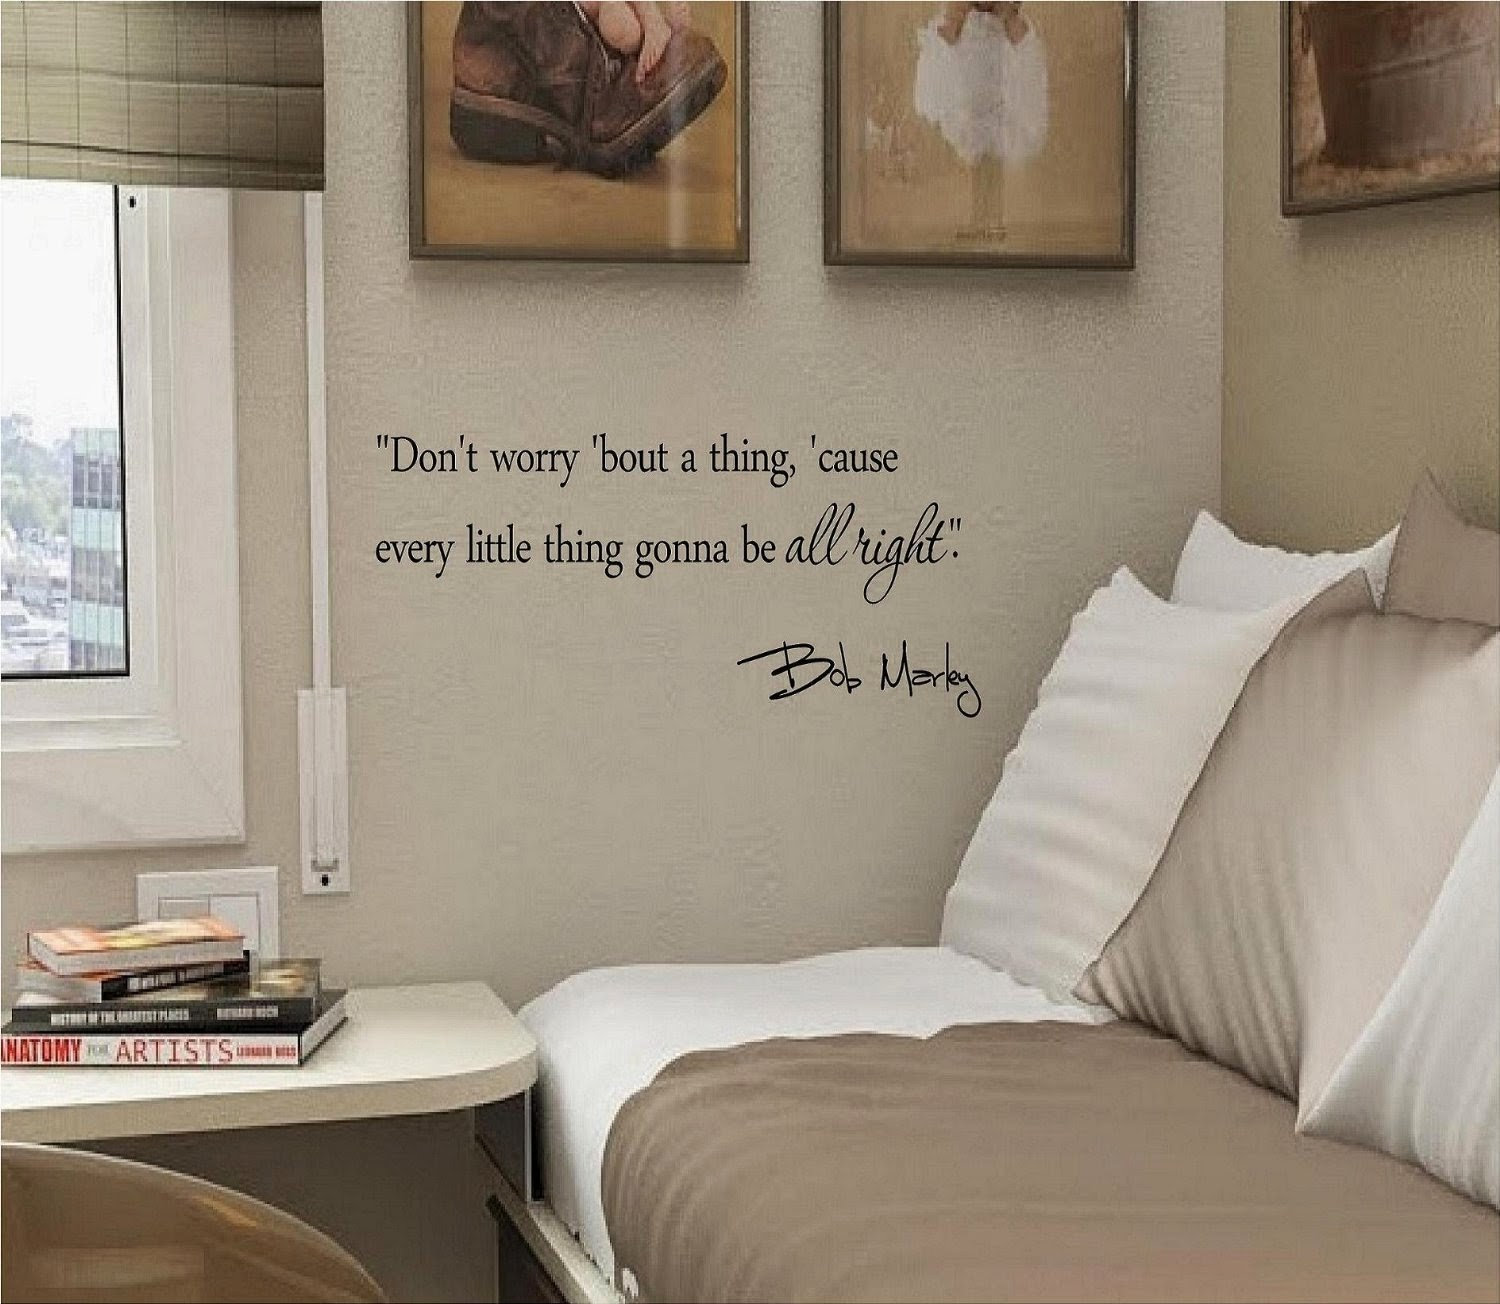 Quotes about home decor quotesgram for Inspiratinal bob marley wall decals